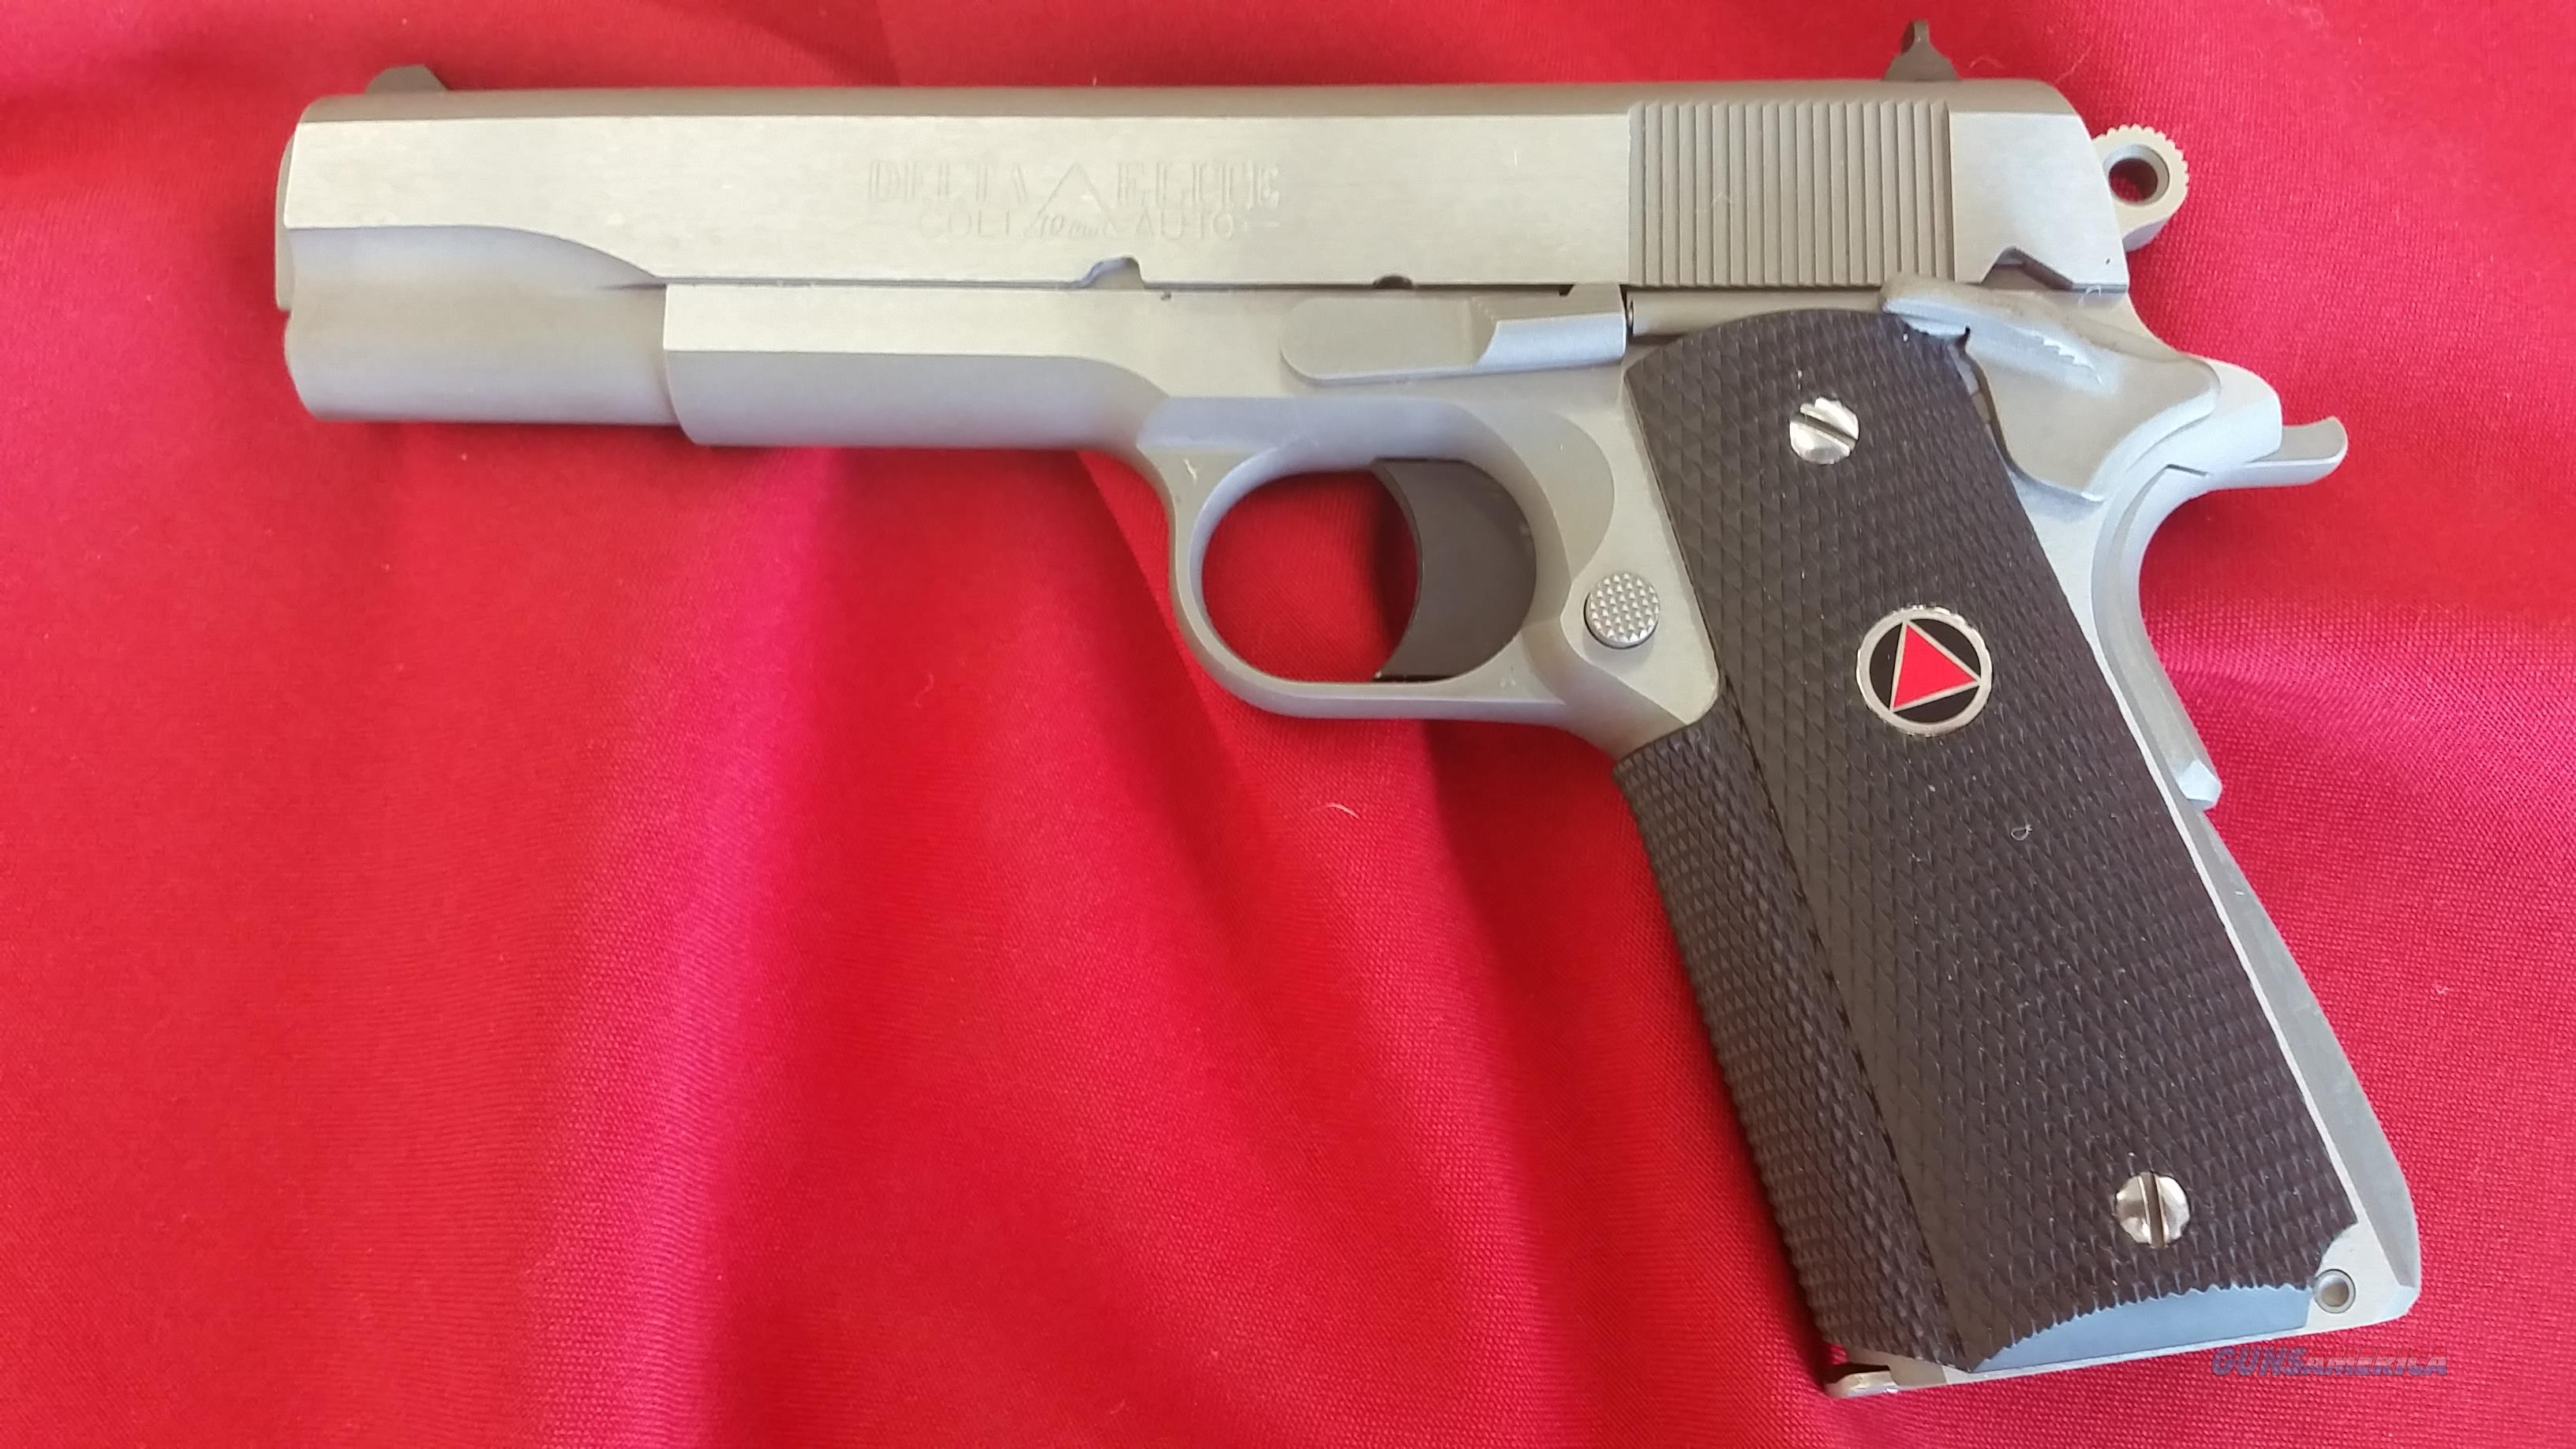 Colt Delta Elite 10mm w/ Wrap Around Grips and (2) 8 Round Mags  Guns > Pistols > Colt Automatic Pistols (1911 & Var)